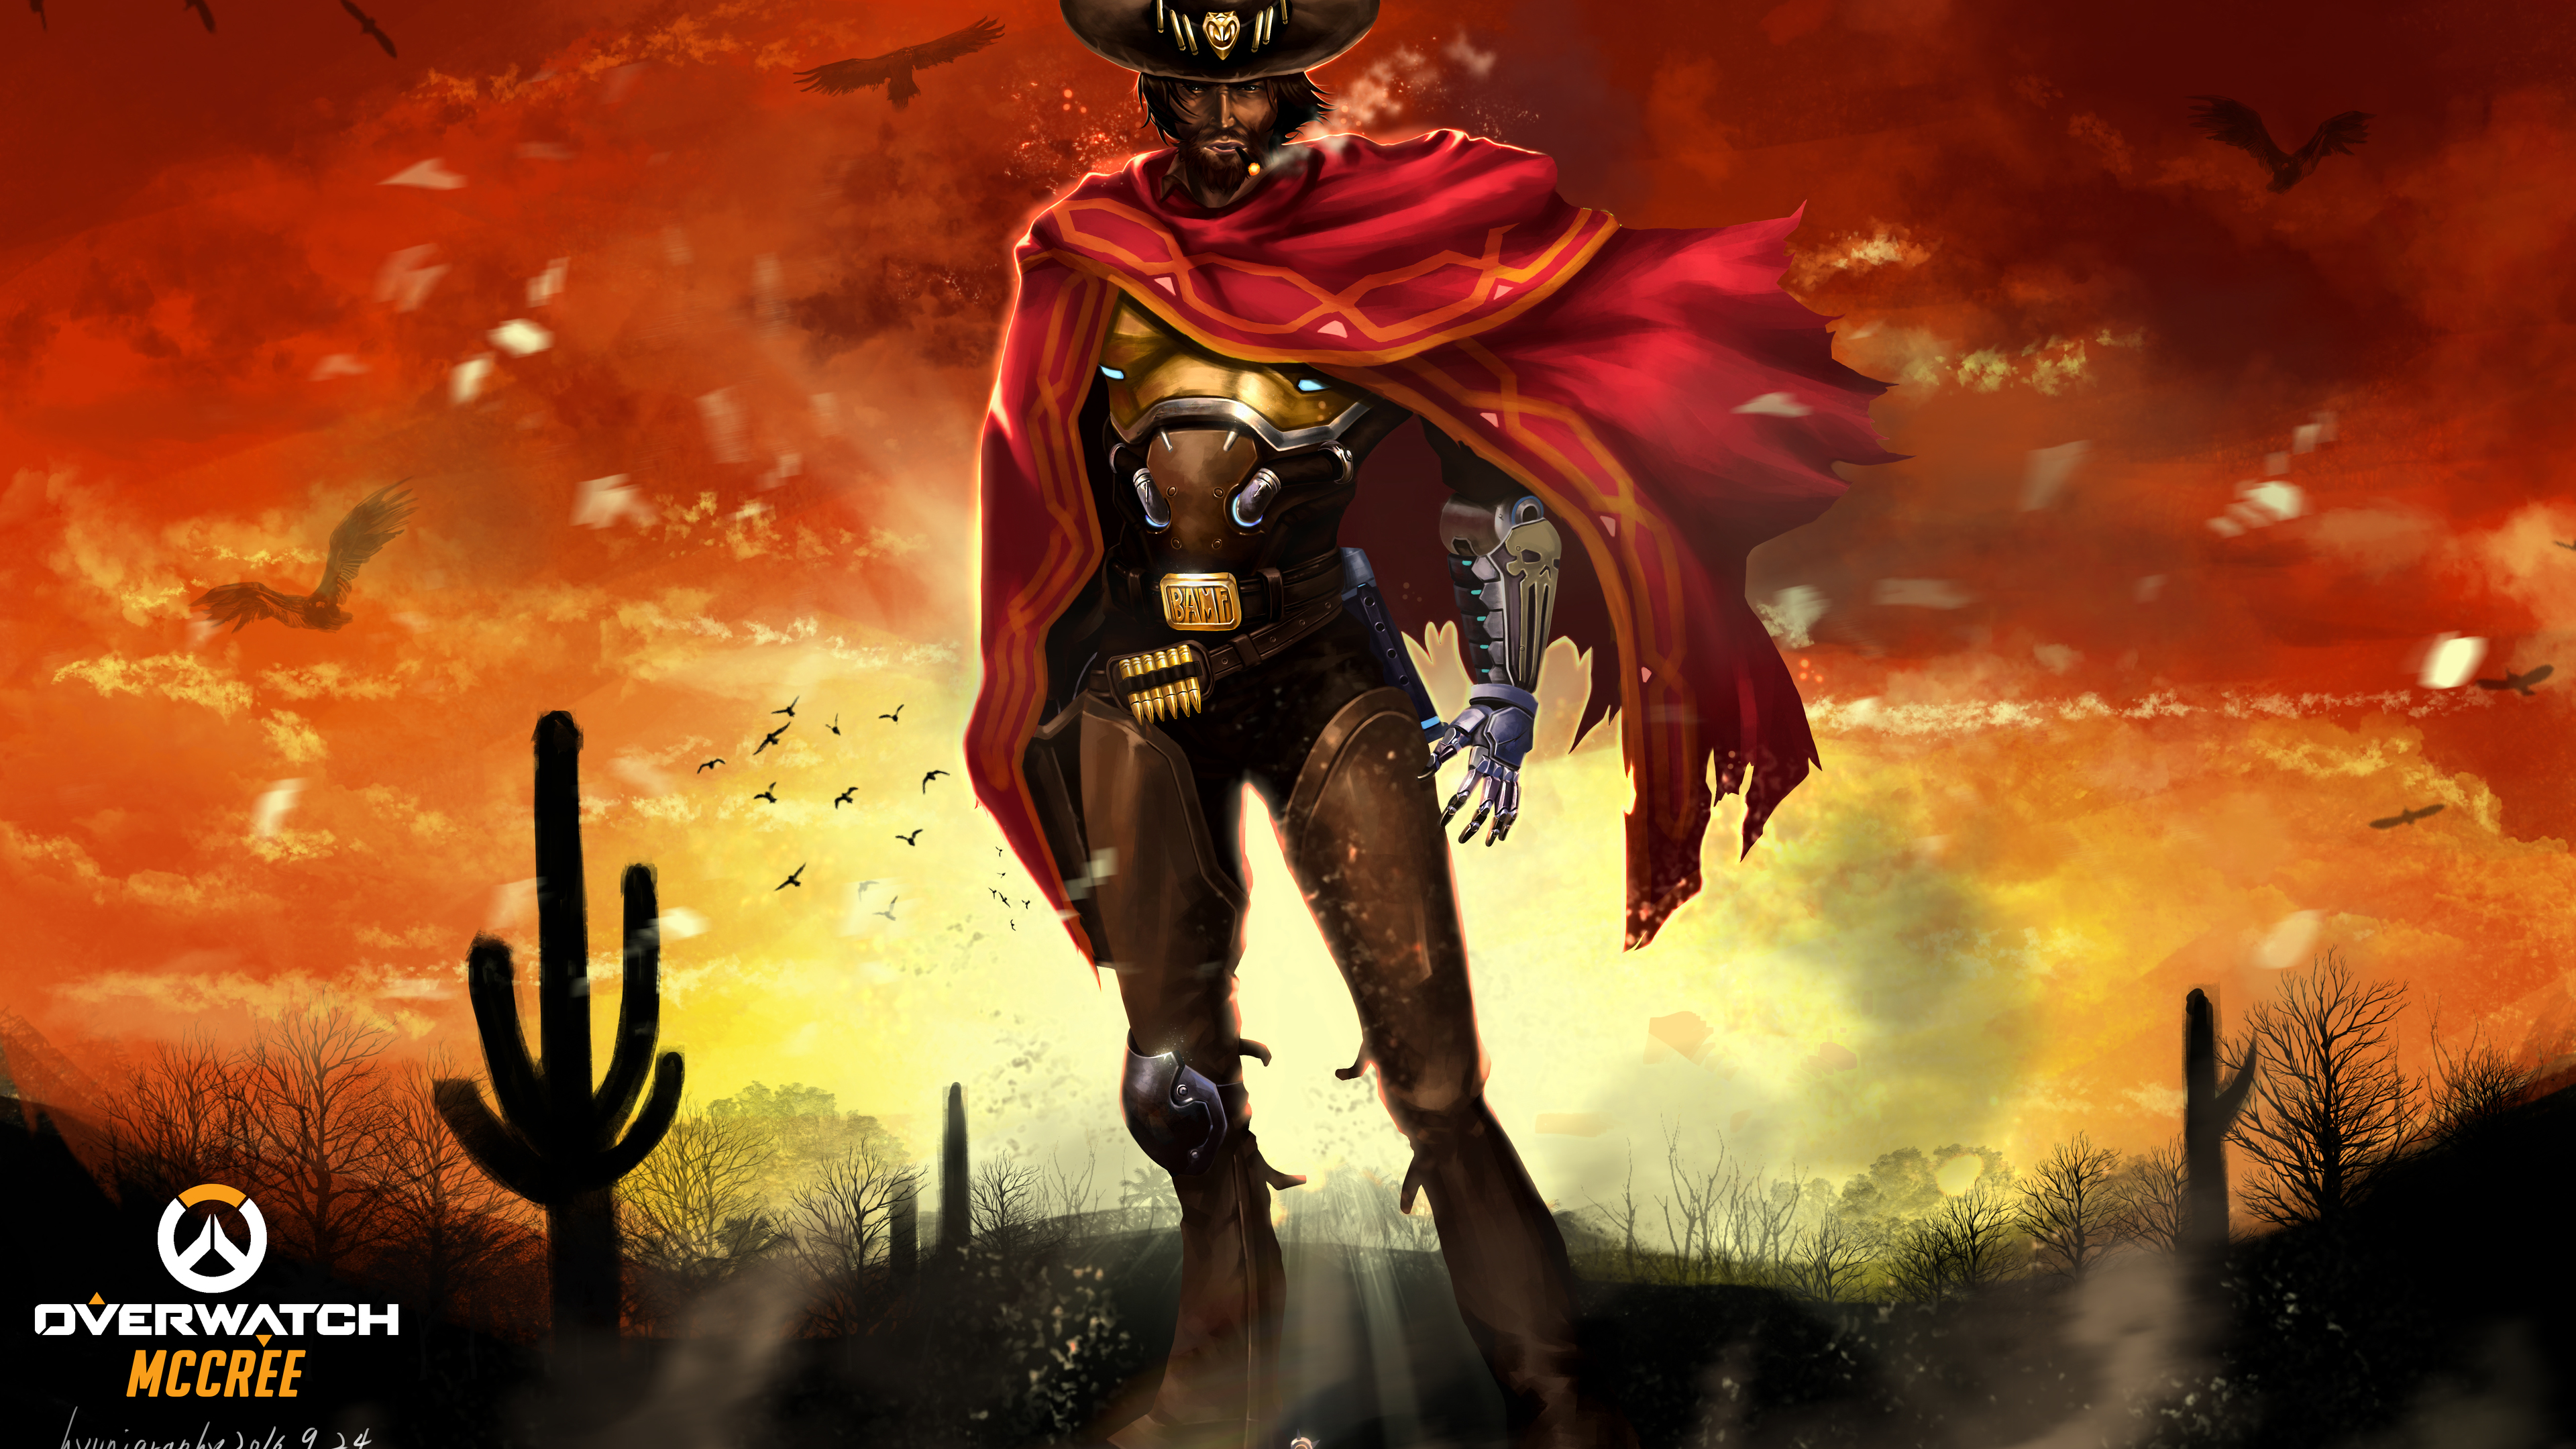 Overwatch McCree 8k xbox games wallpapers, ps games ...